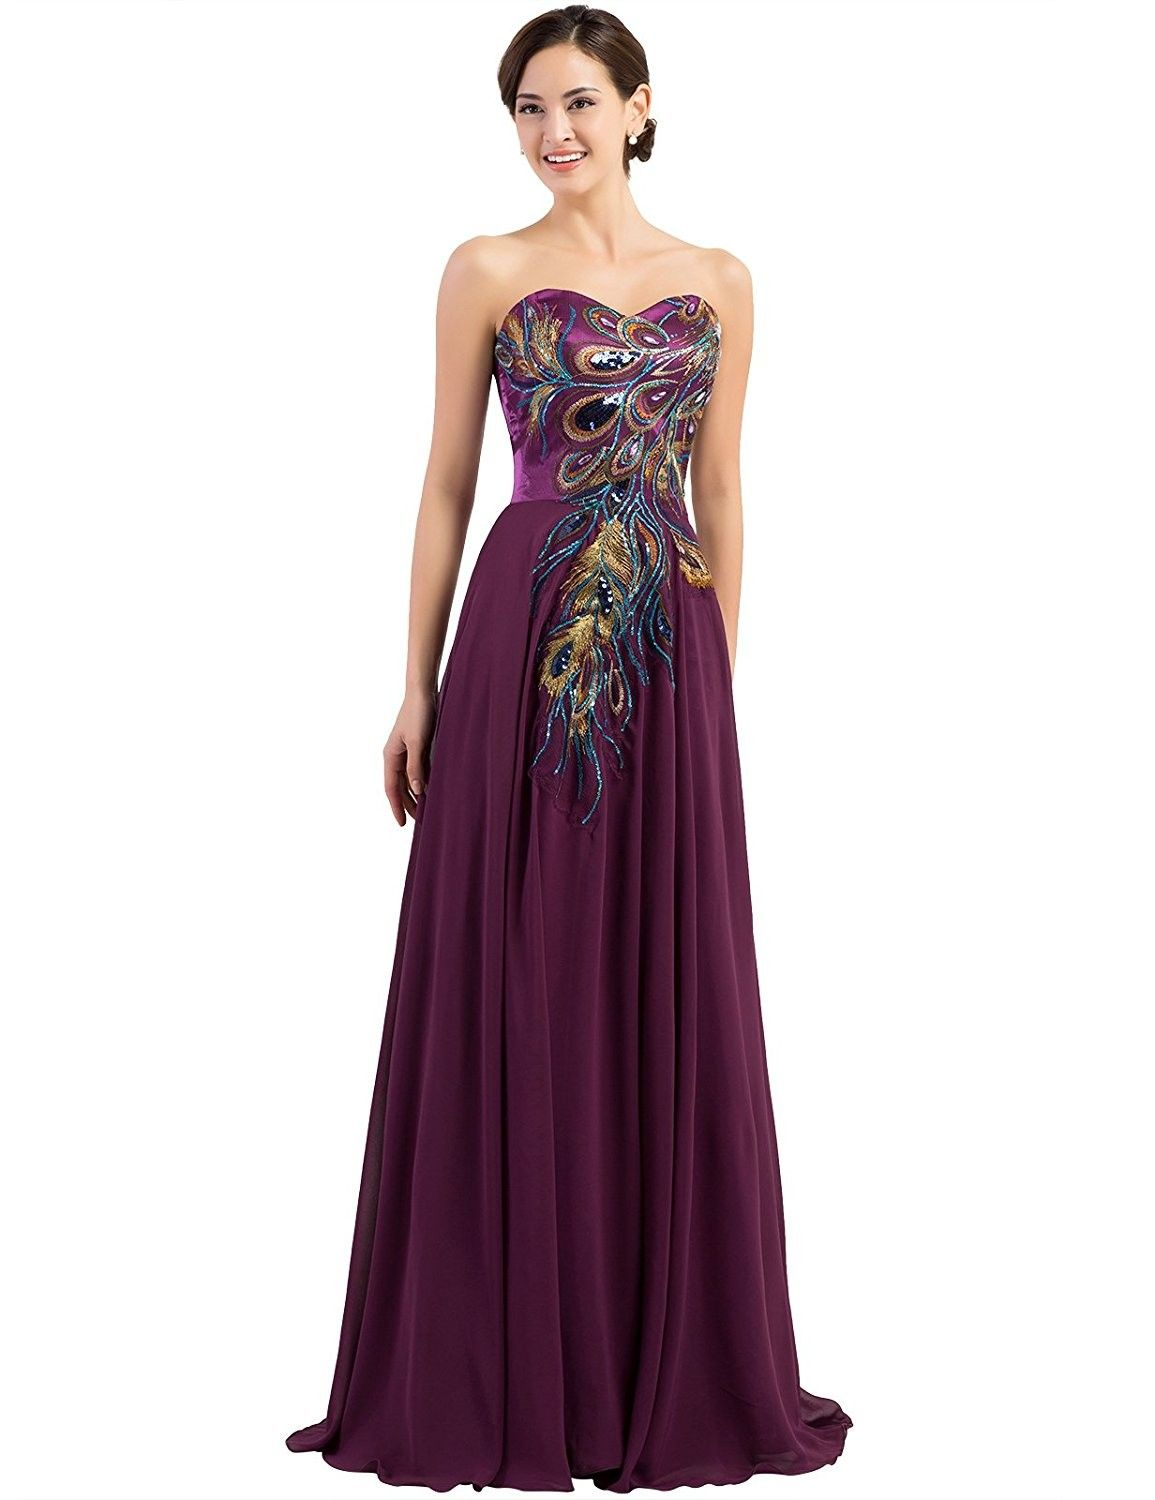 Womenus clothing dresses formal long strapless embroidery prom